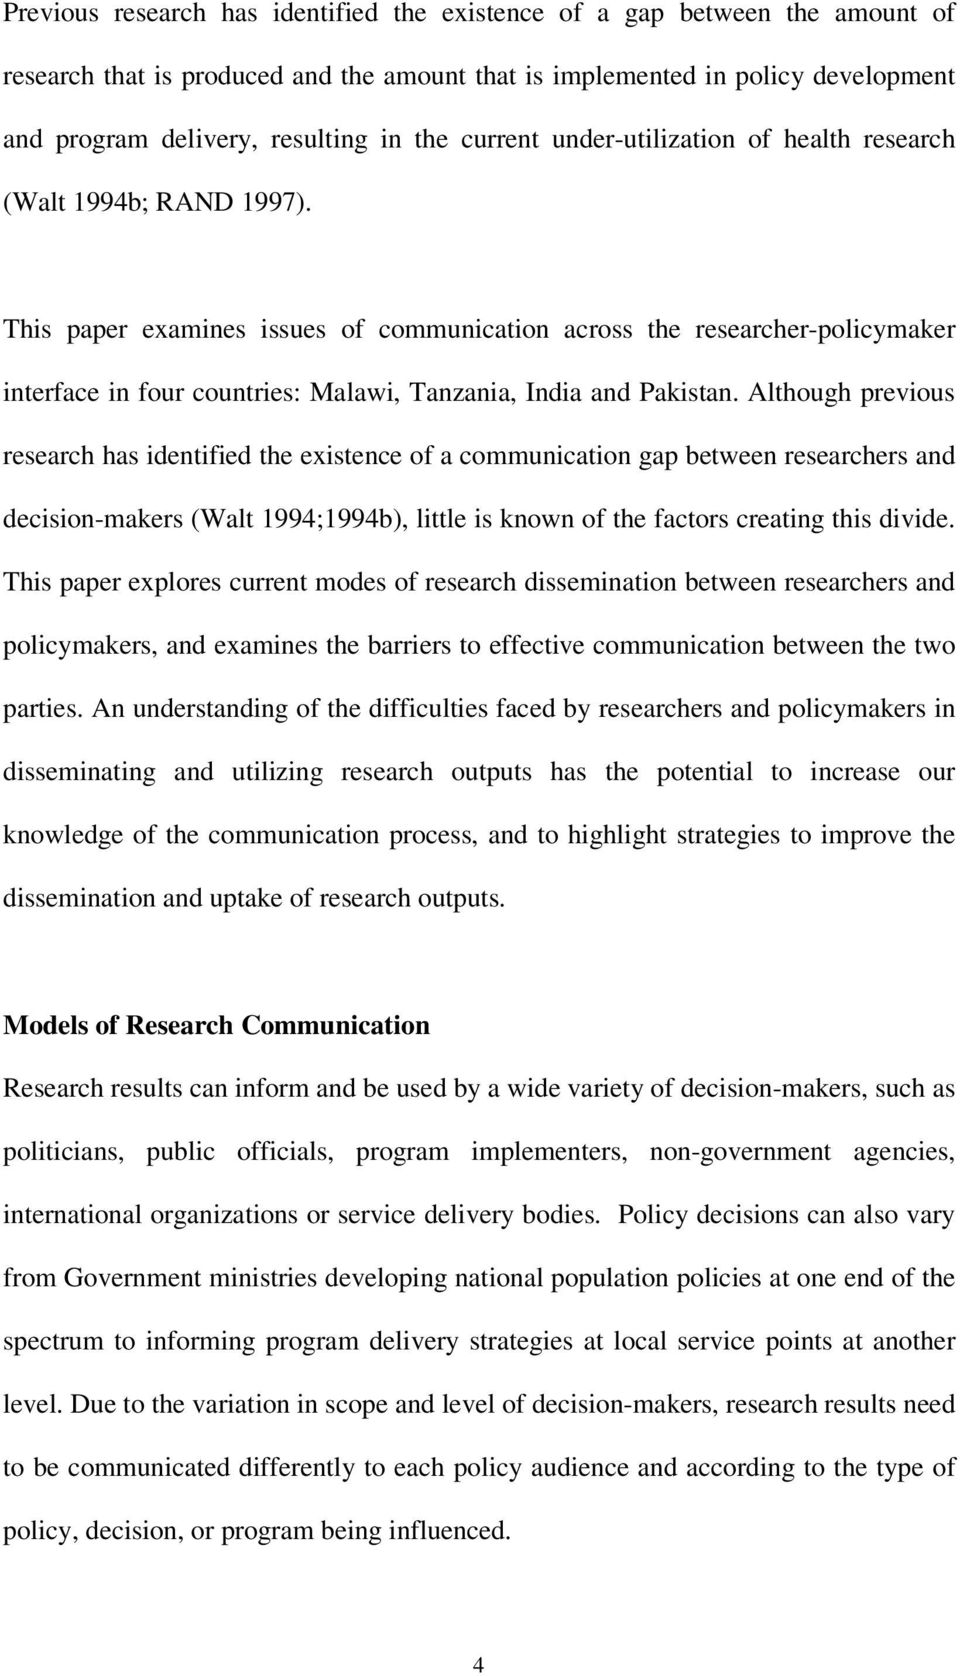 This paper examines issues of communication across the researcher-policymaker interface in four countries: Malawi, Tanzania, India and Pakistan.